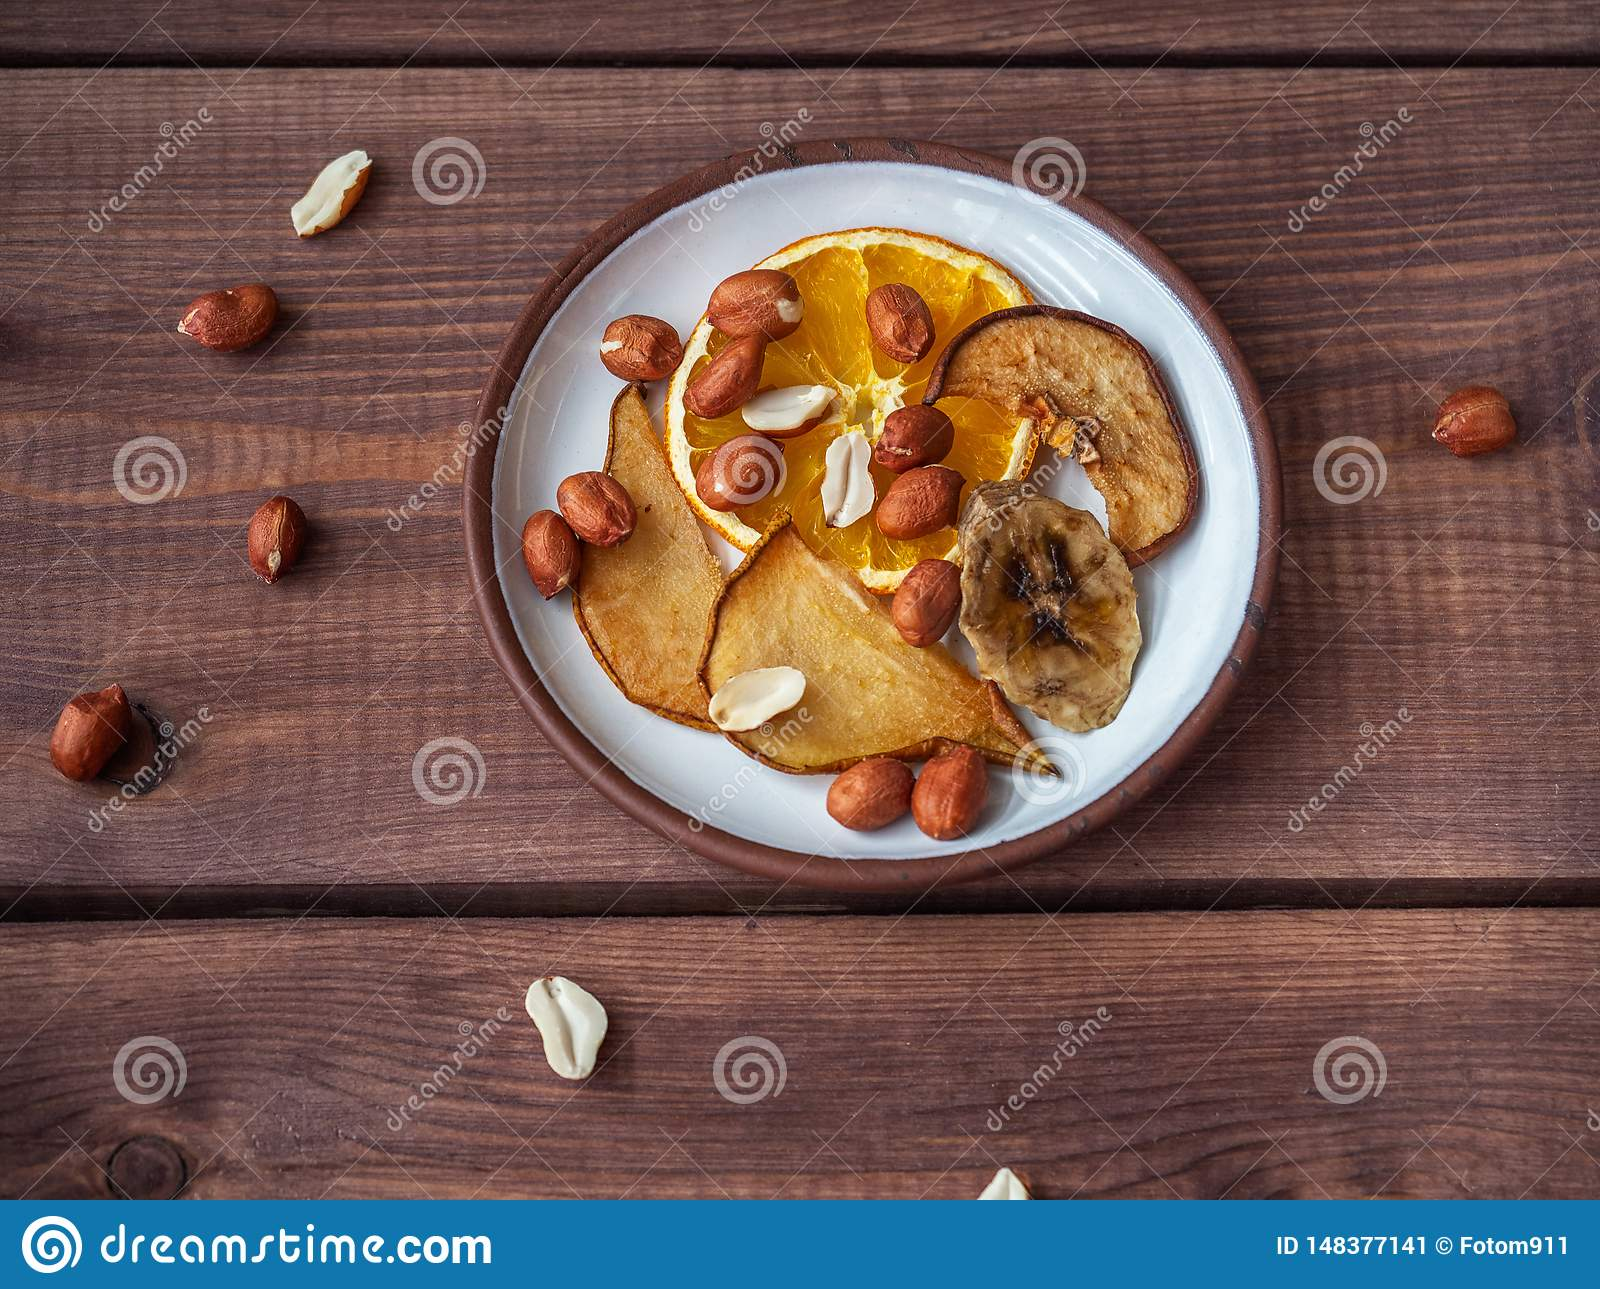 Fruit chips without sugar and additives on a small plate and peanuts, scattered next to the plate and on the plate, the